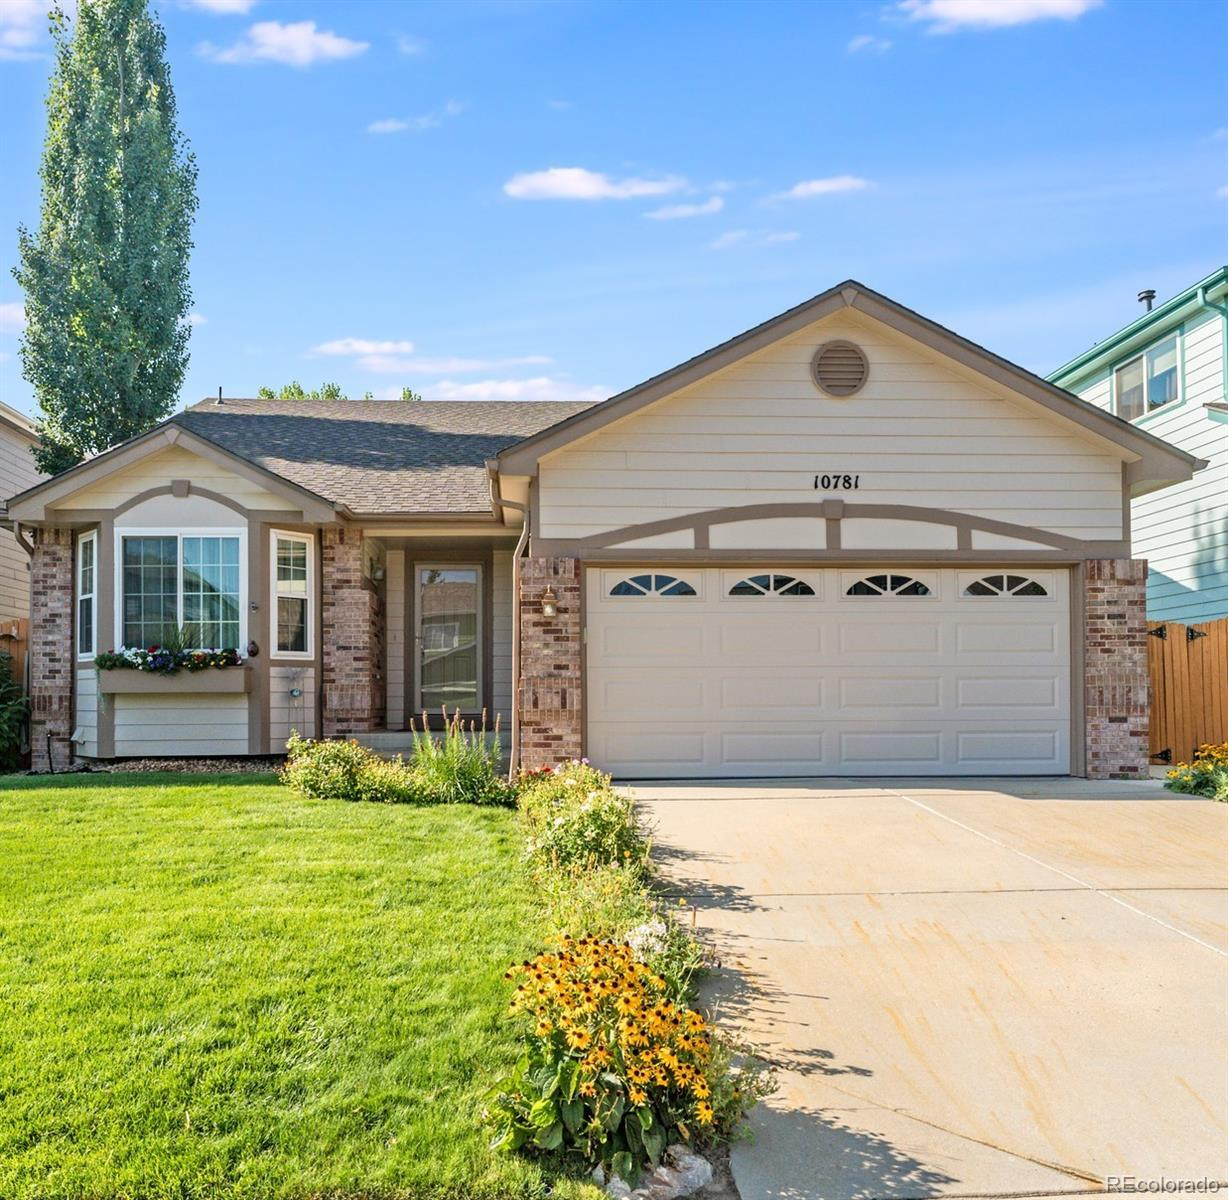 10781 W 107th Circle, Westminster, CO 80021 - #: 6728385